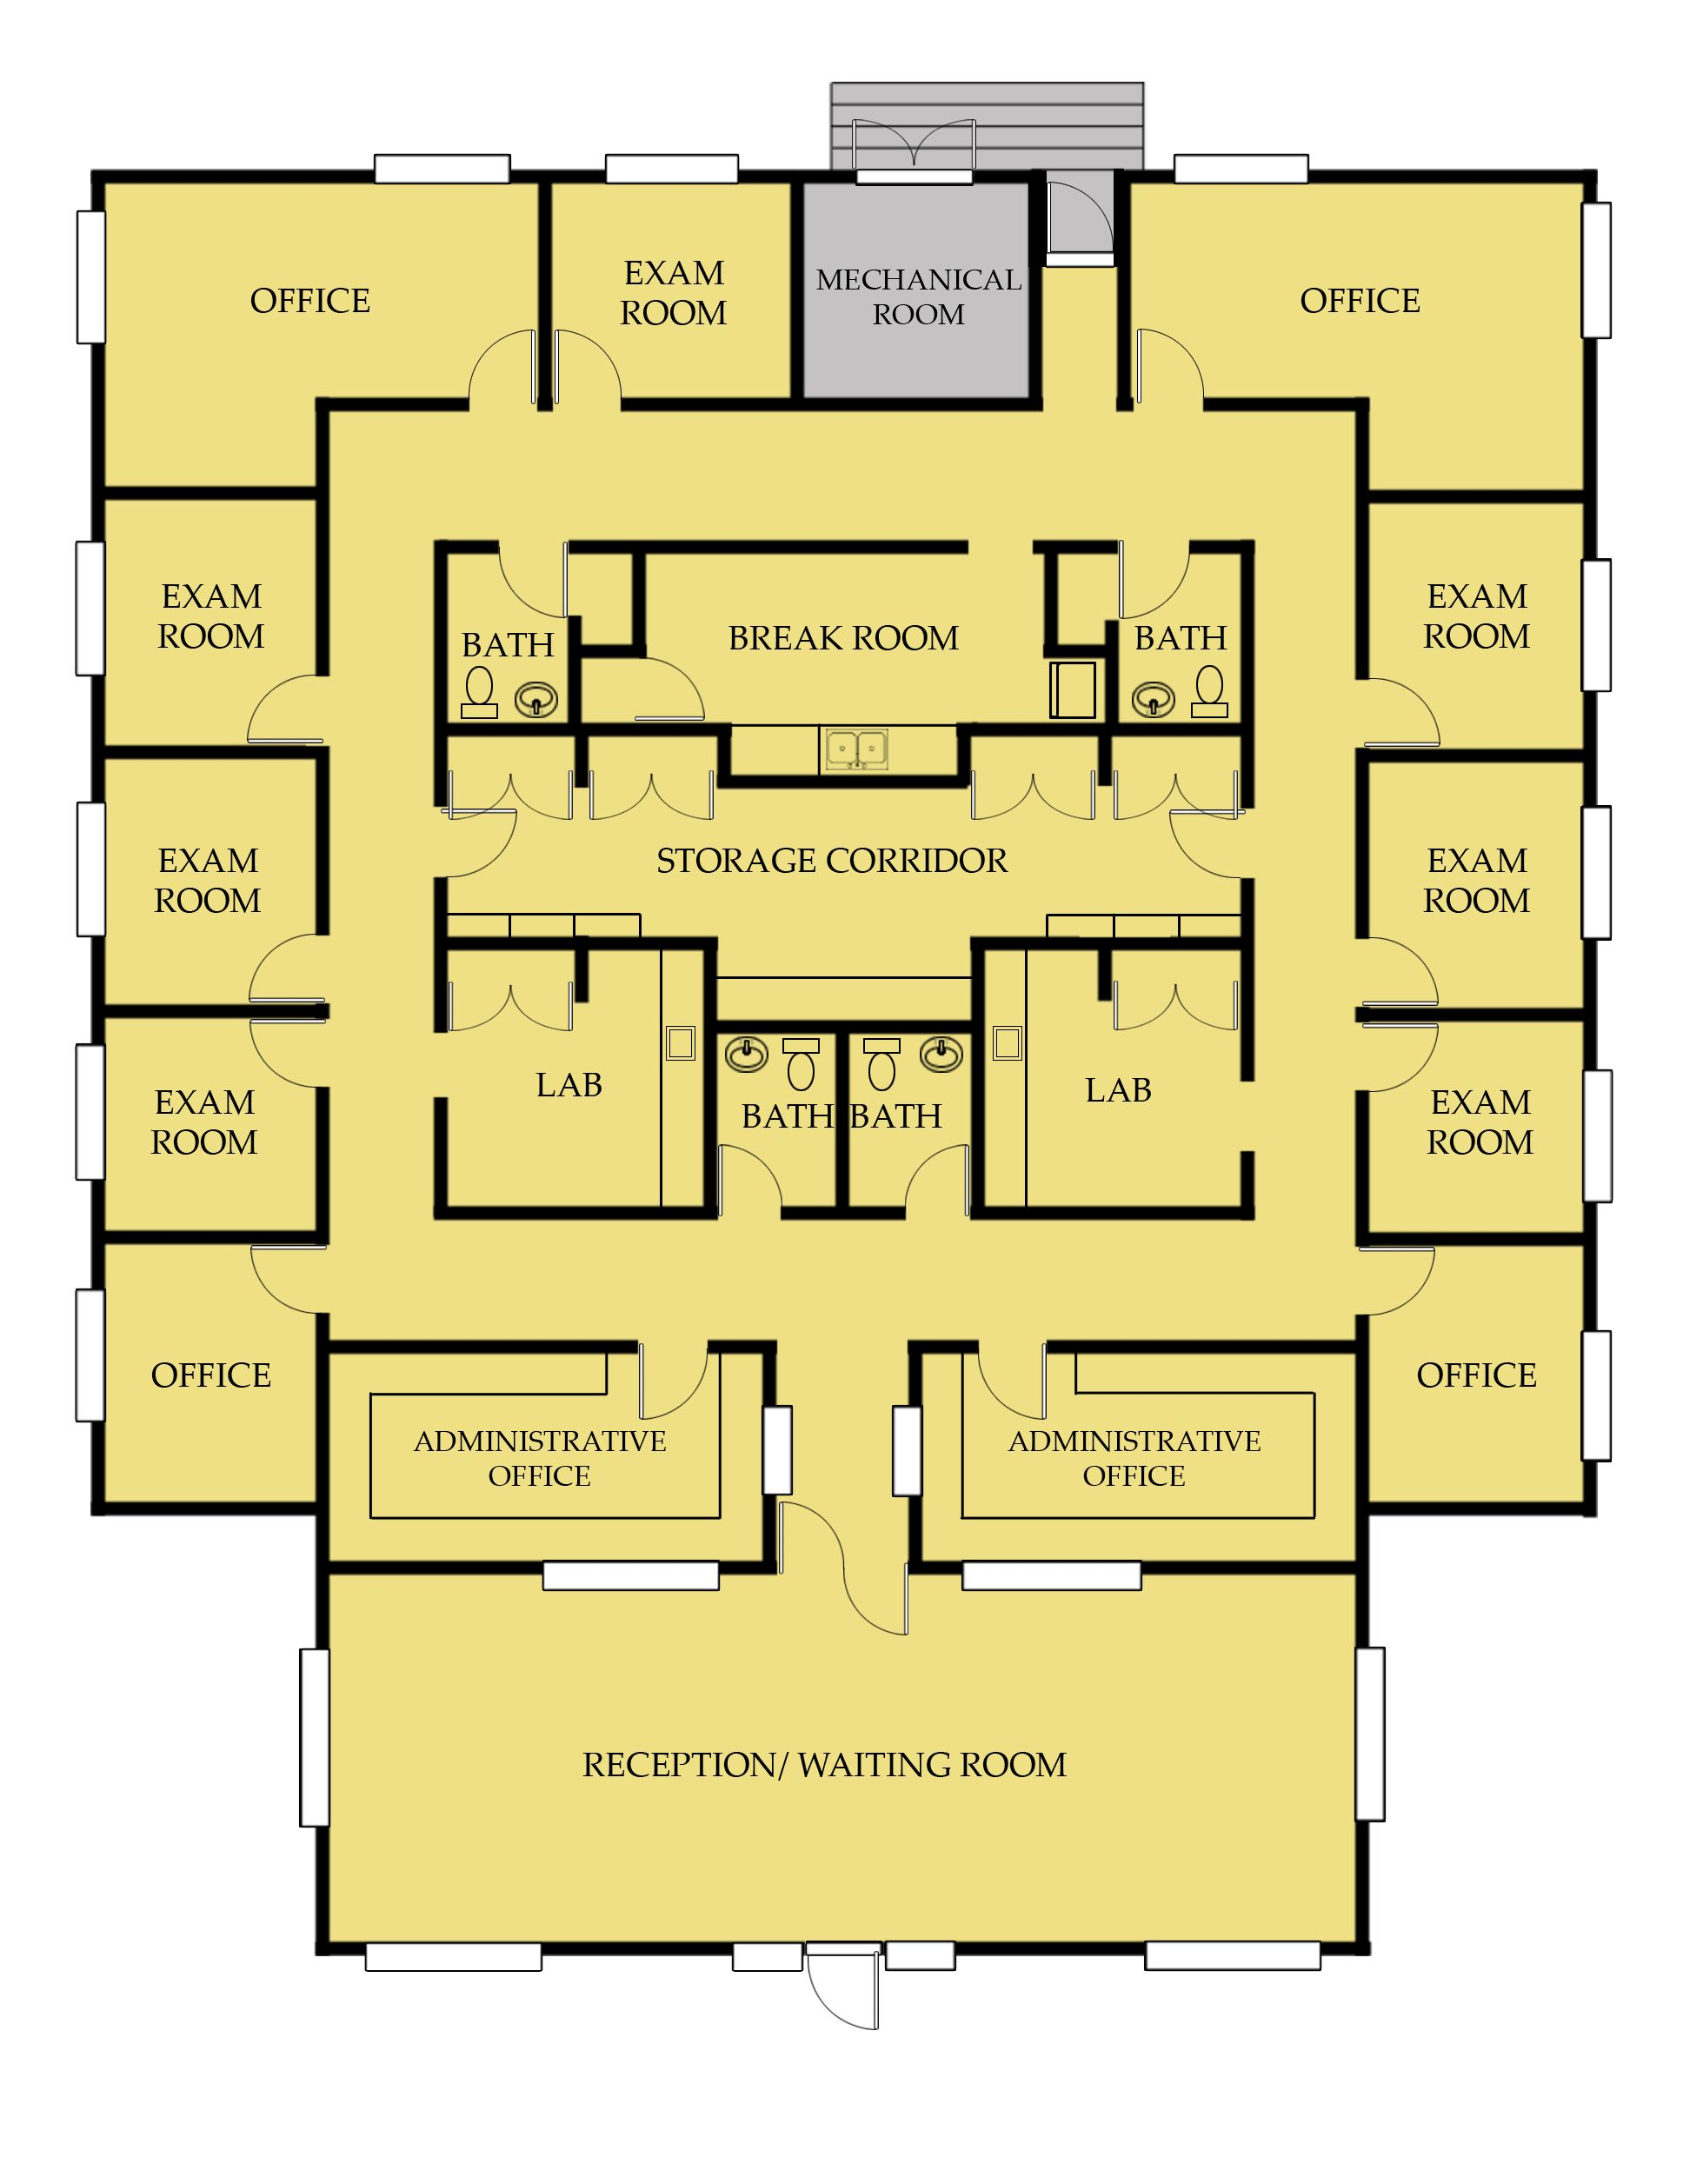 Medical office floor plan pinteres for Office plan design